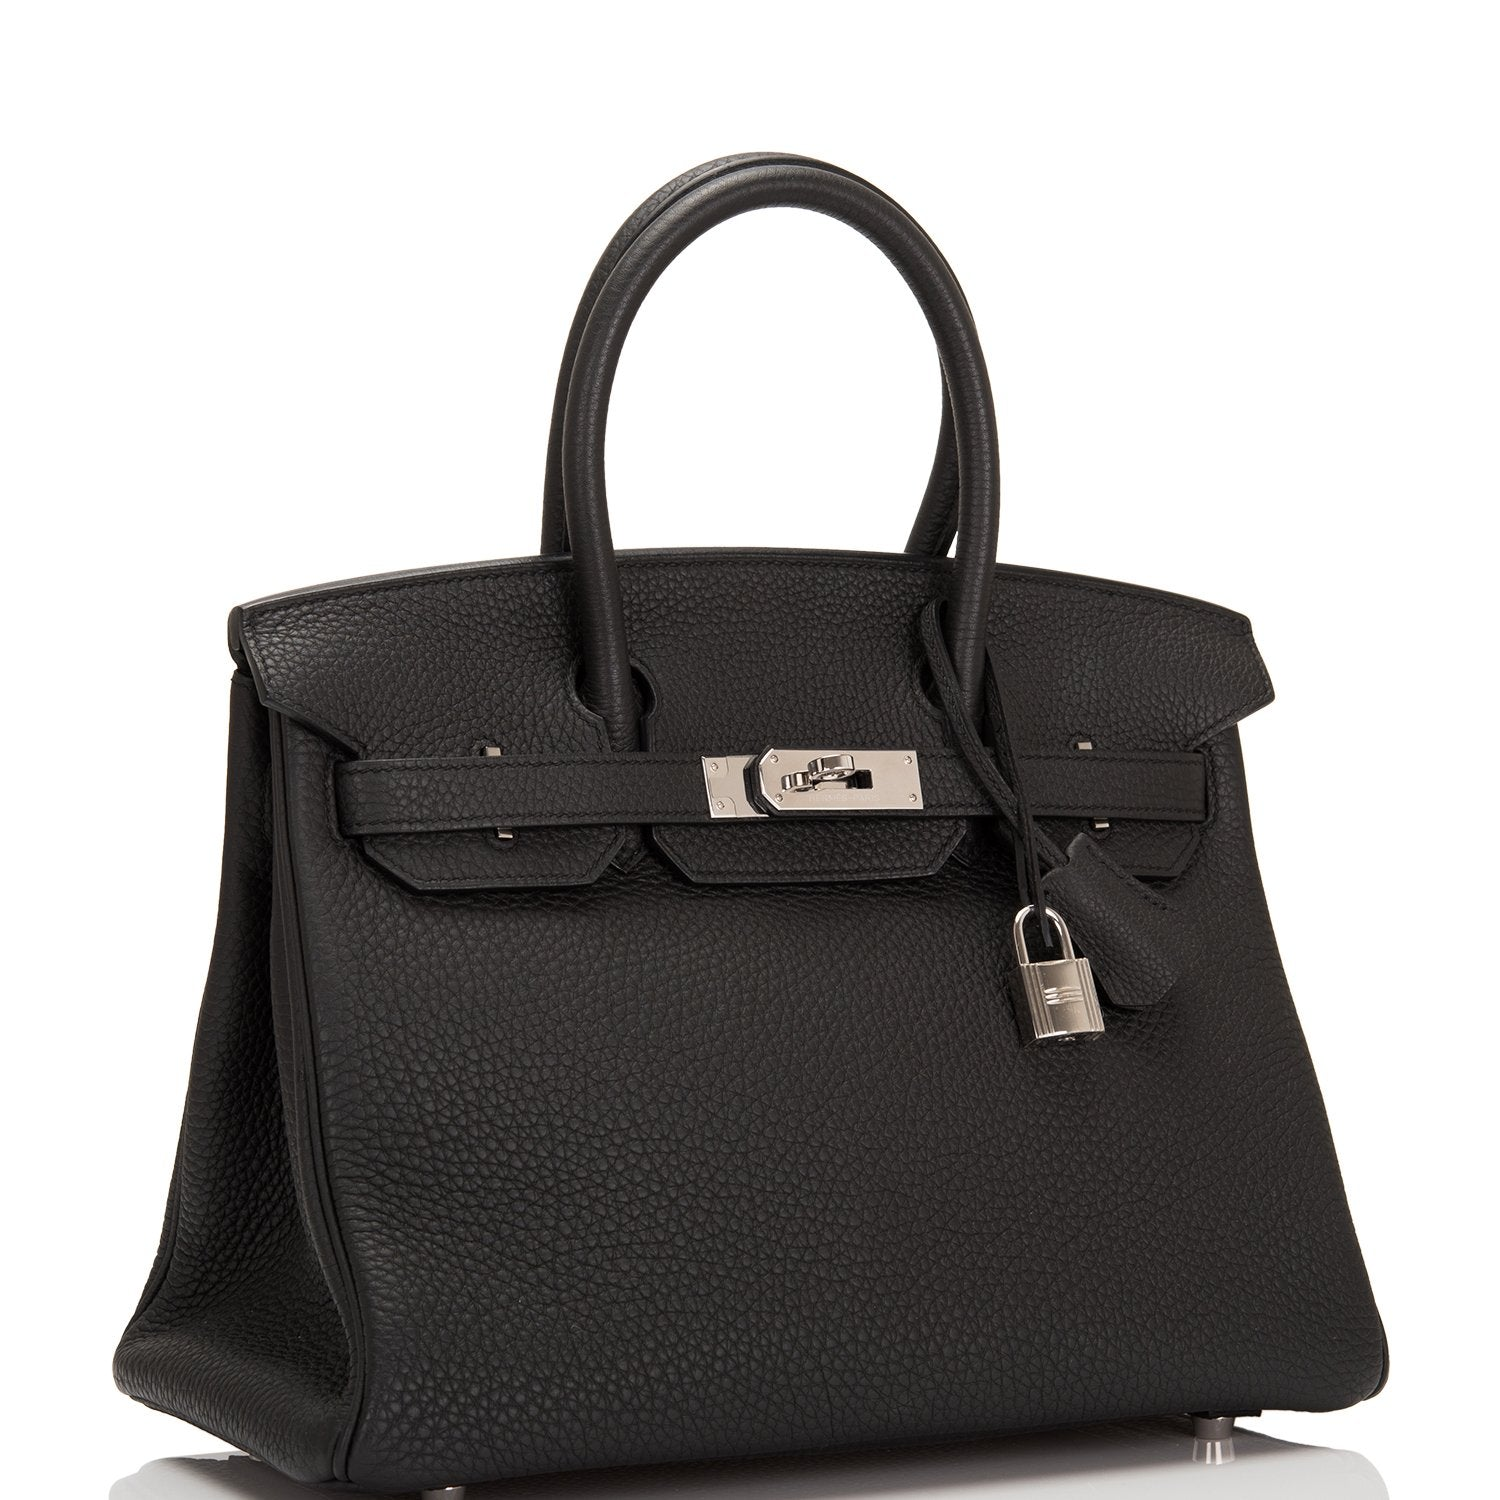 Hermes Black Clemence Birkin 30cm Palladium Hardware (Preloved - Excellent)